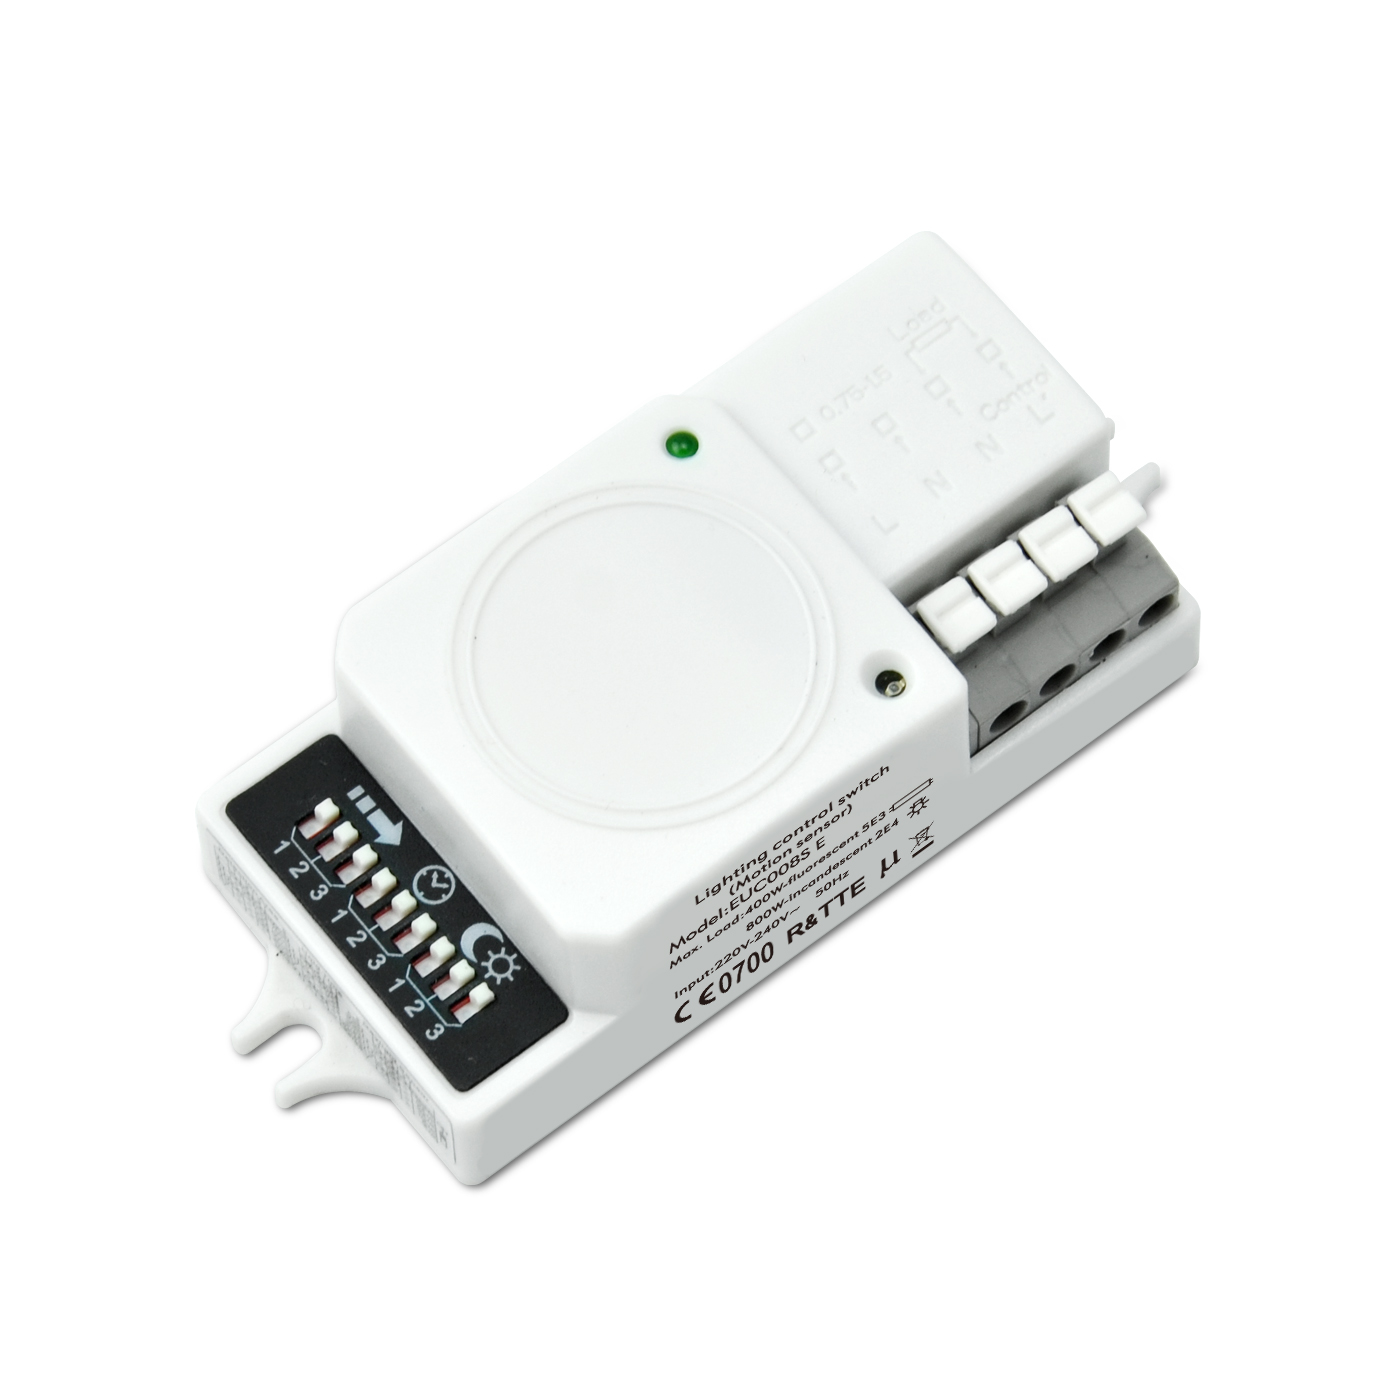 [out of stock]220-240VAC ON/OFF Control Sensor Featured Image